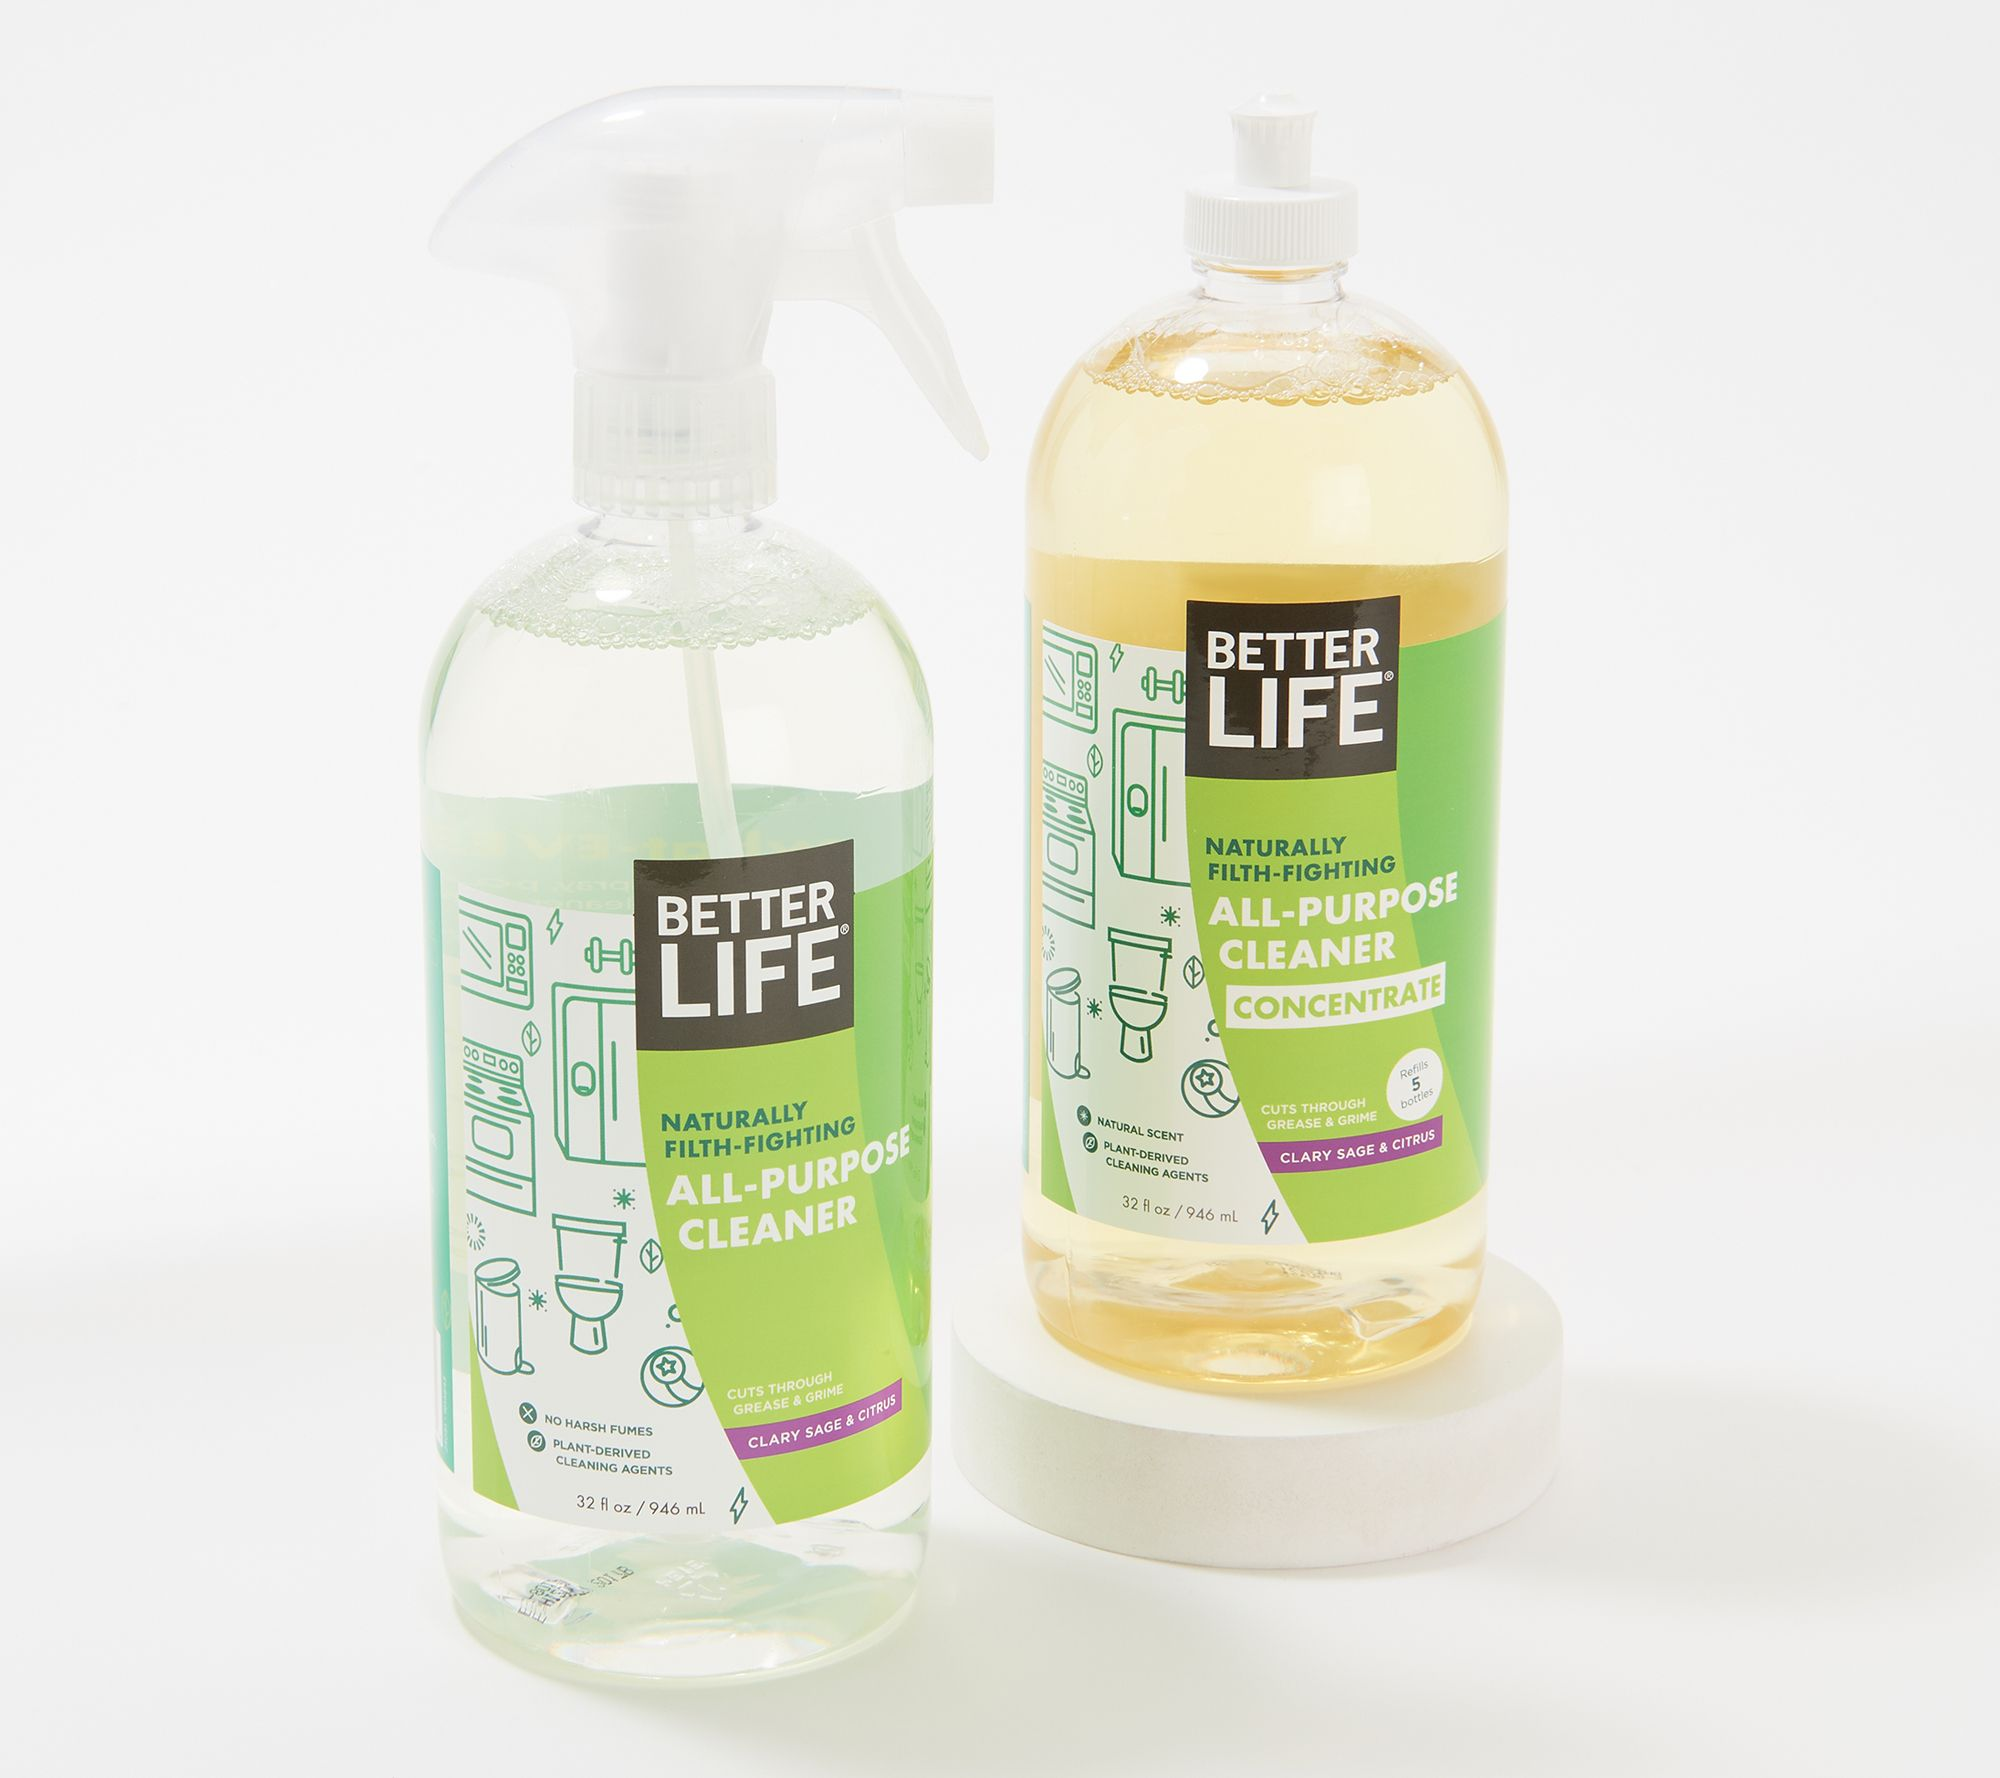 All-purpose cleaner with concentrated 32 oz refill